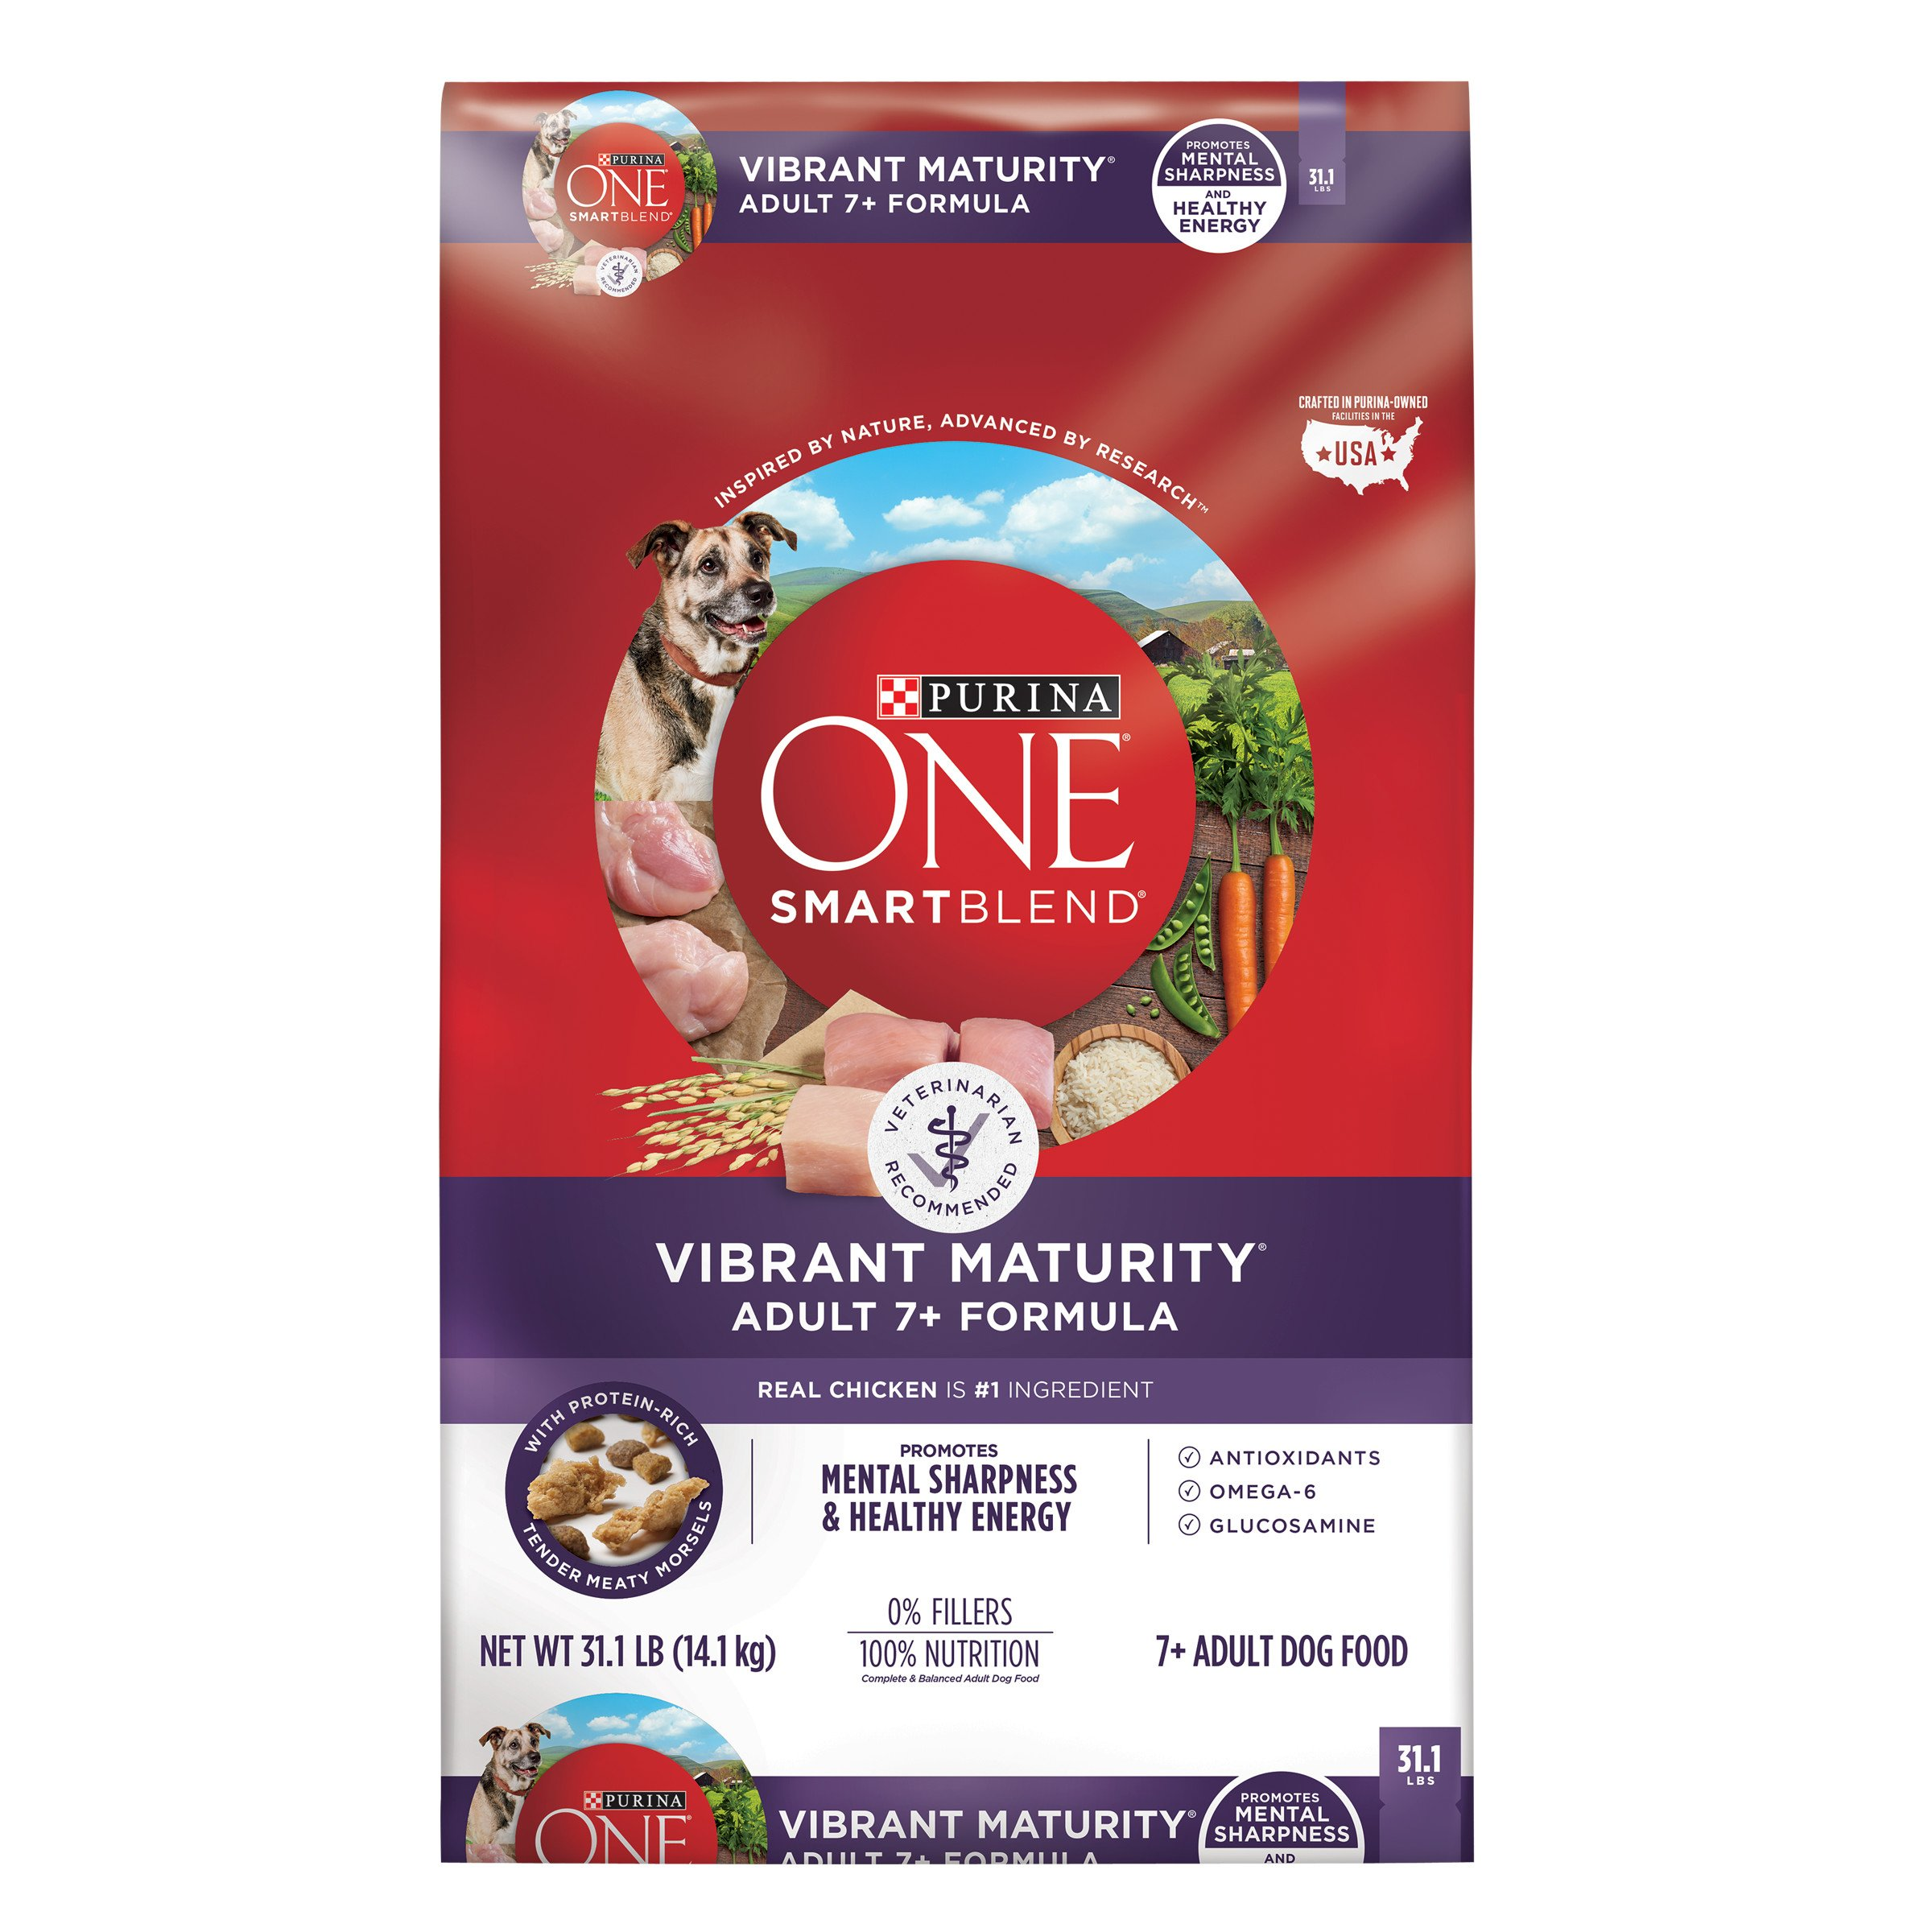 Purina ONE SmartBlend Vibrant Maturity Adult 7+ Formula Dry Dog Food - 31.1 lb. Bag